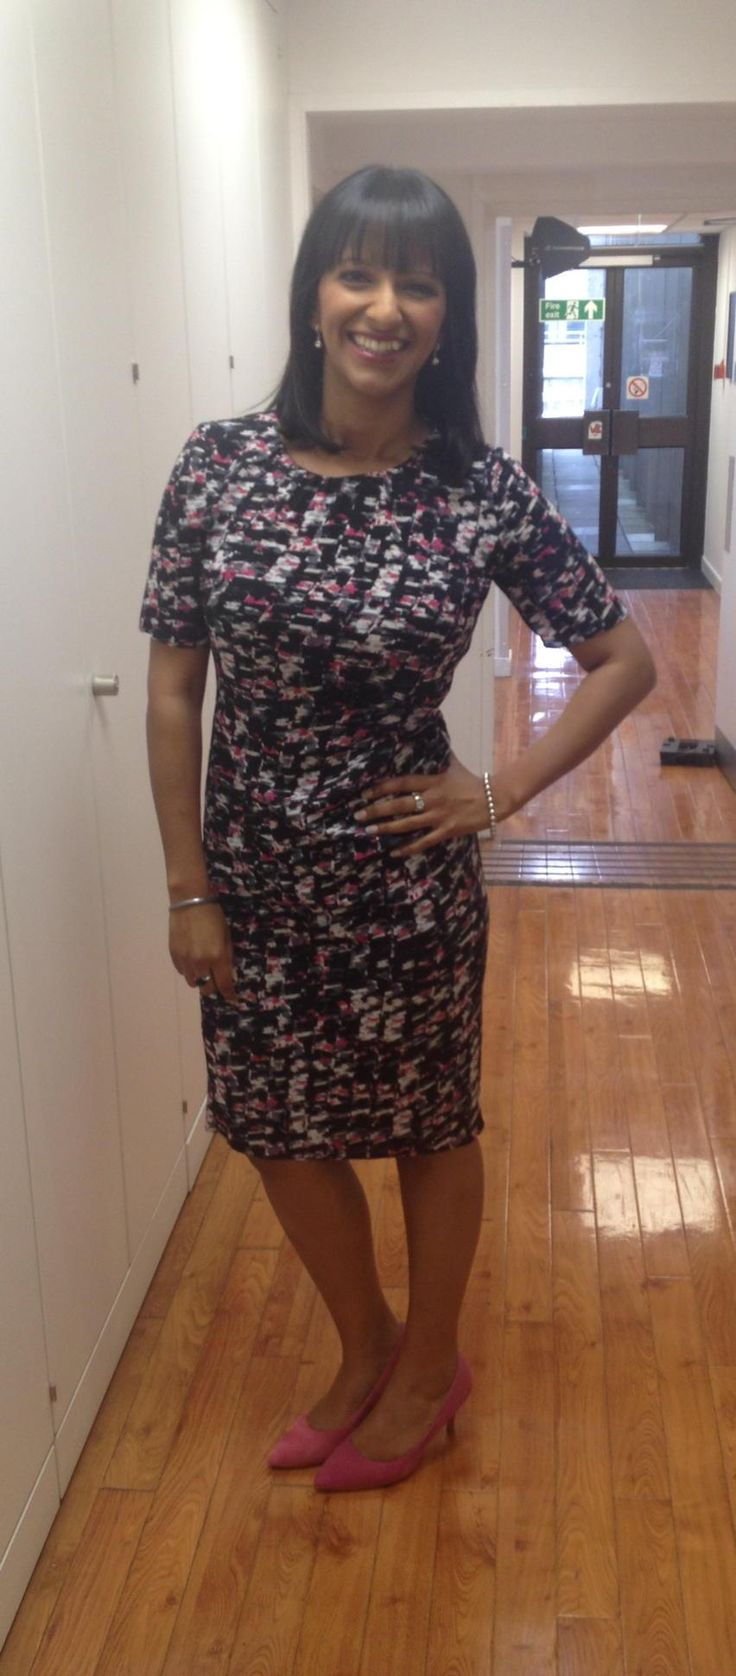 @GMB @ranvir01 looking a beaut as usual in Jasper Conran @Debenhams dress @nextofficial shoes!